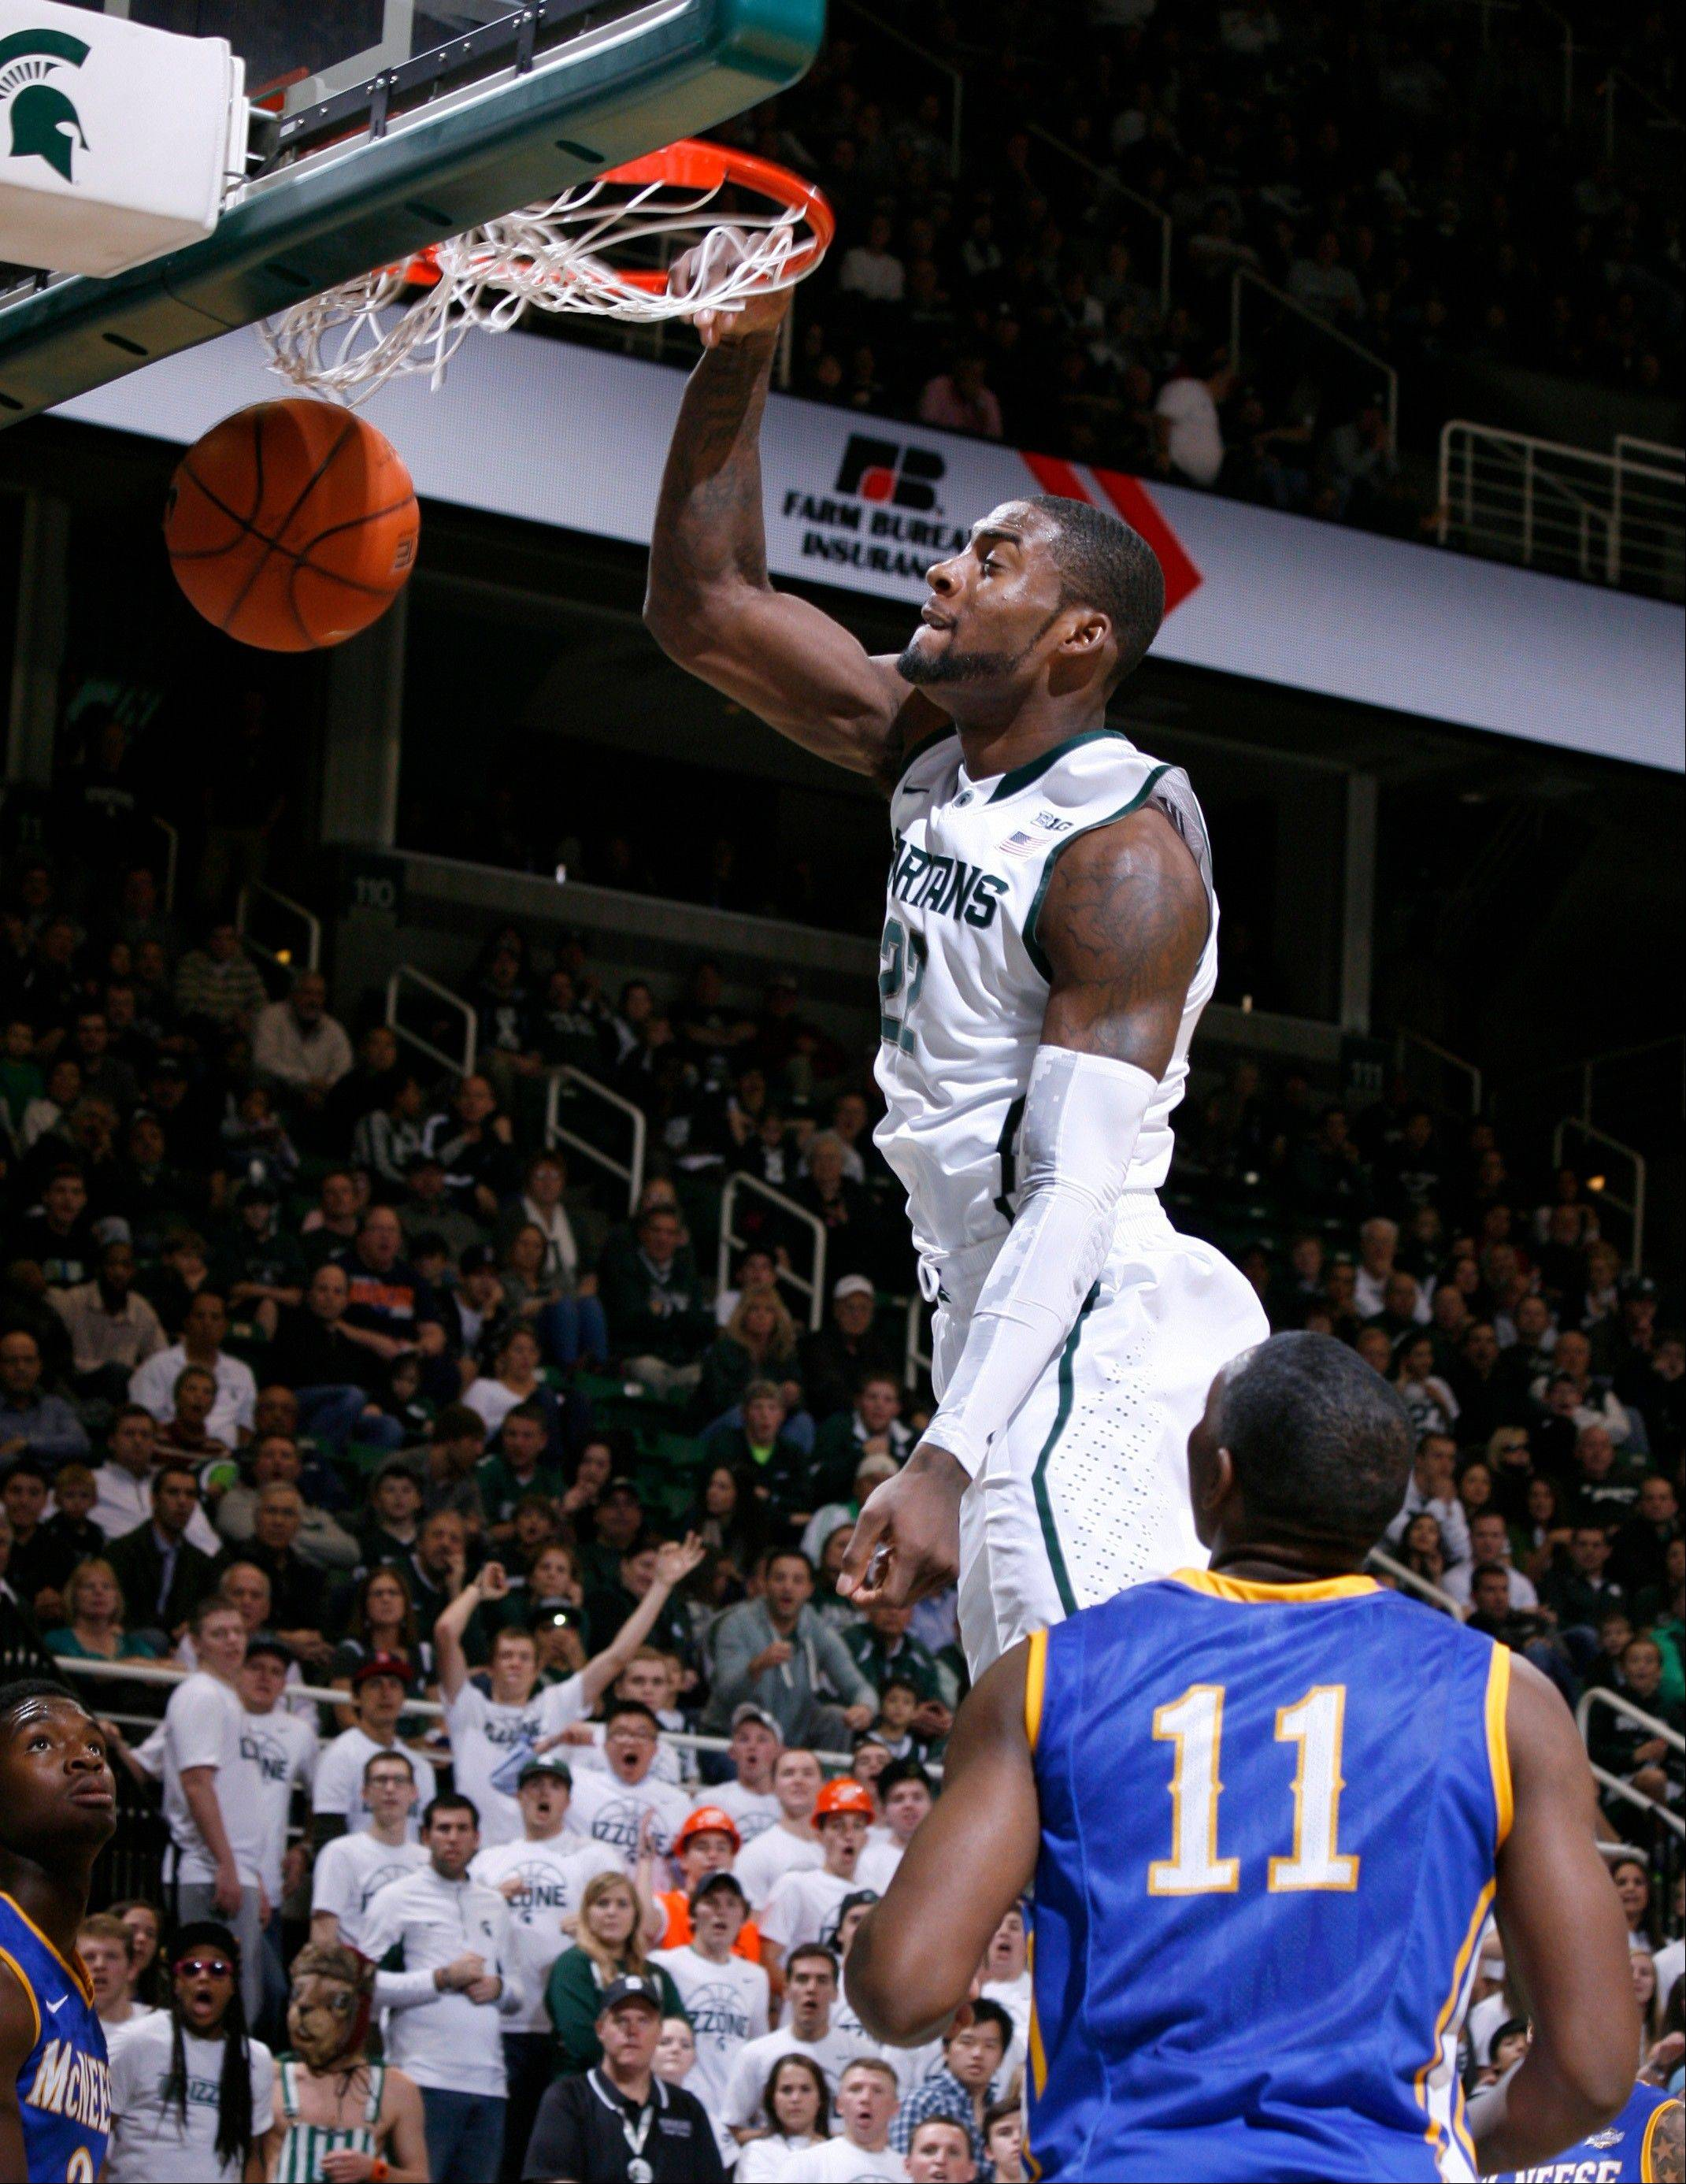 Michigan State's Branden Dawson dunks over McNeese State's Kevin Hardy Friday during the second half in East Lansing, Mich.